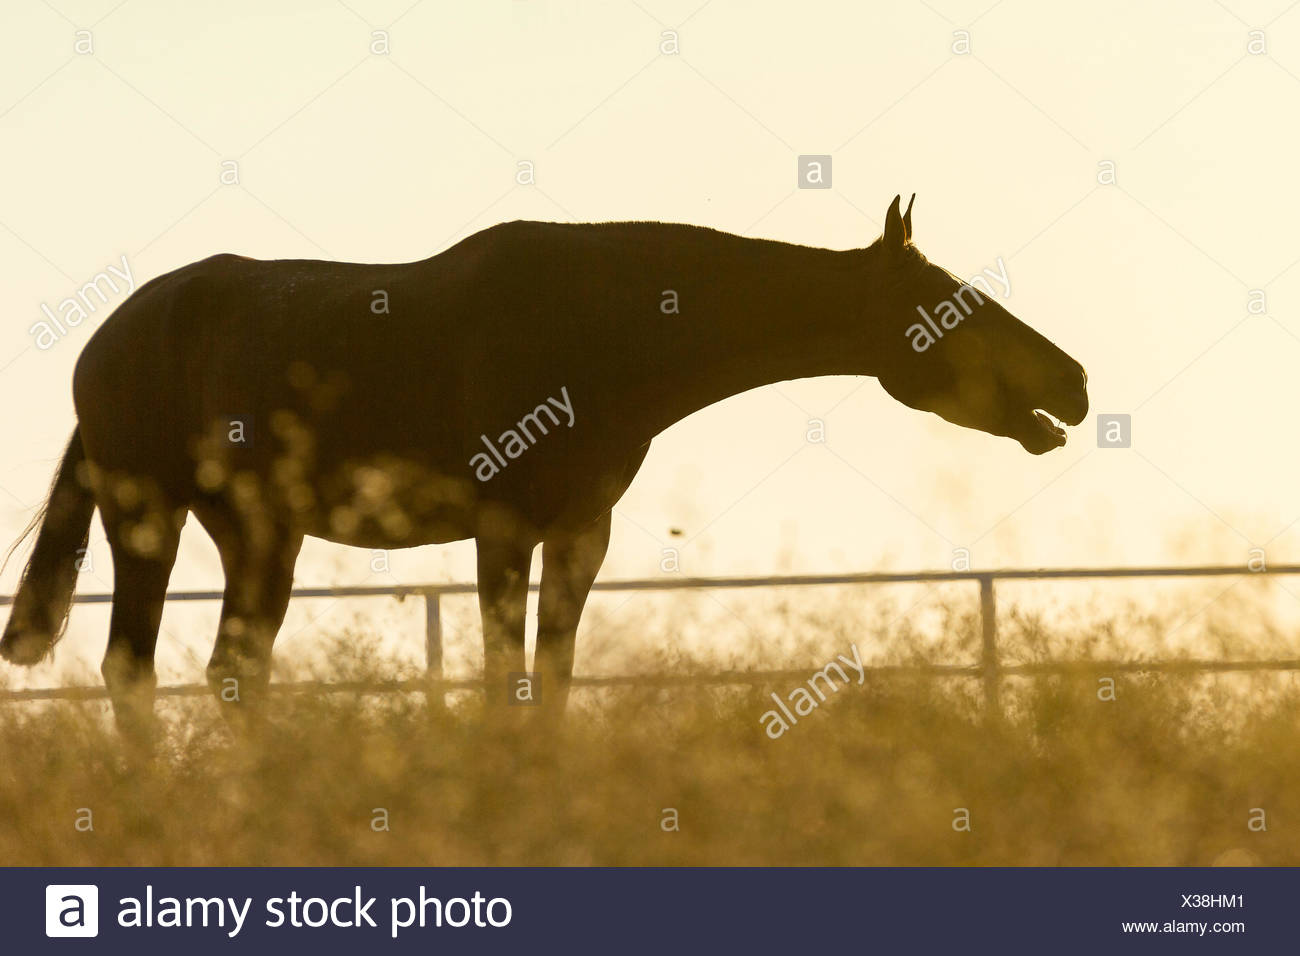 Pure Spanish Horse, Andalusian Horse on a pasture, coughing, silhouetted against the evening sky. Spain - Stock Image